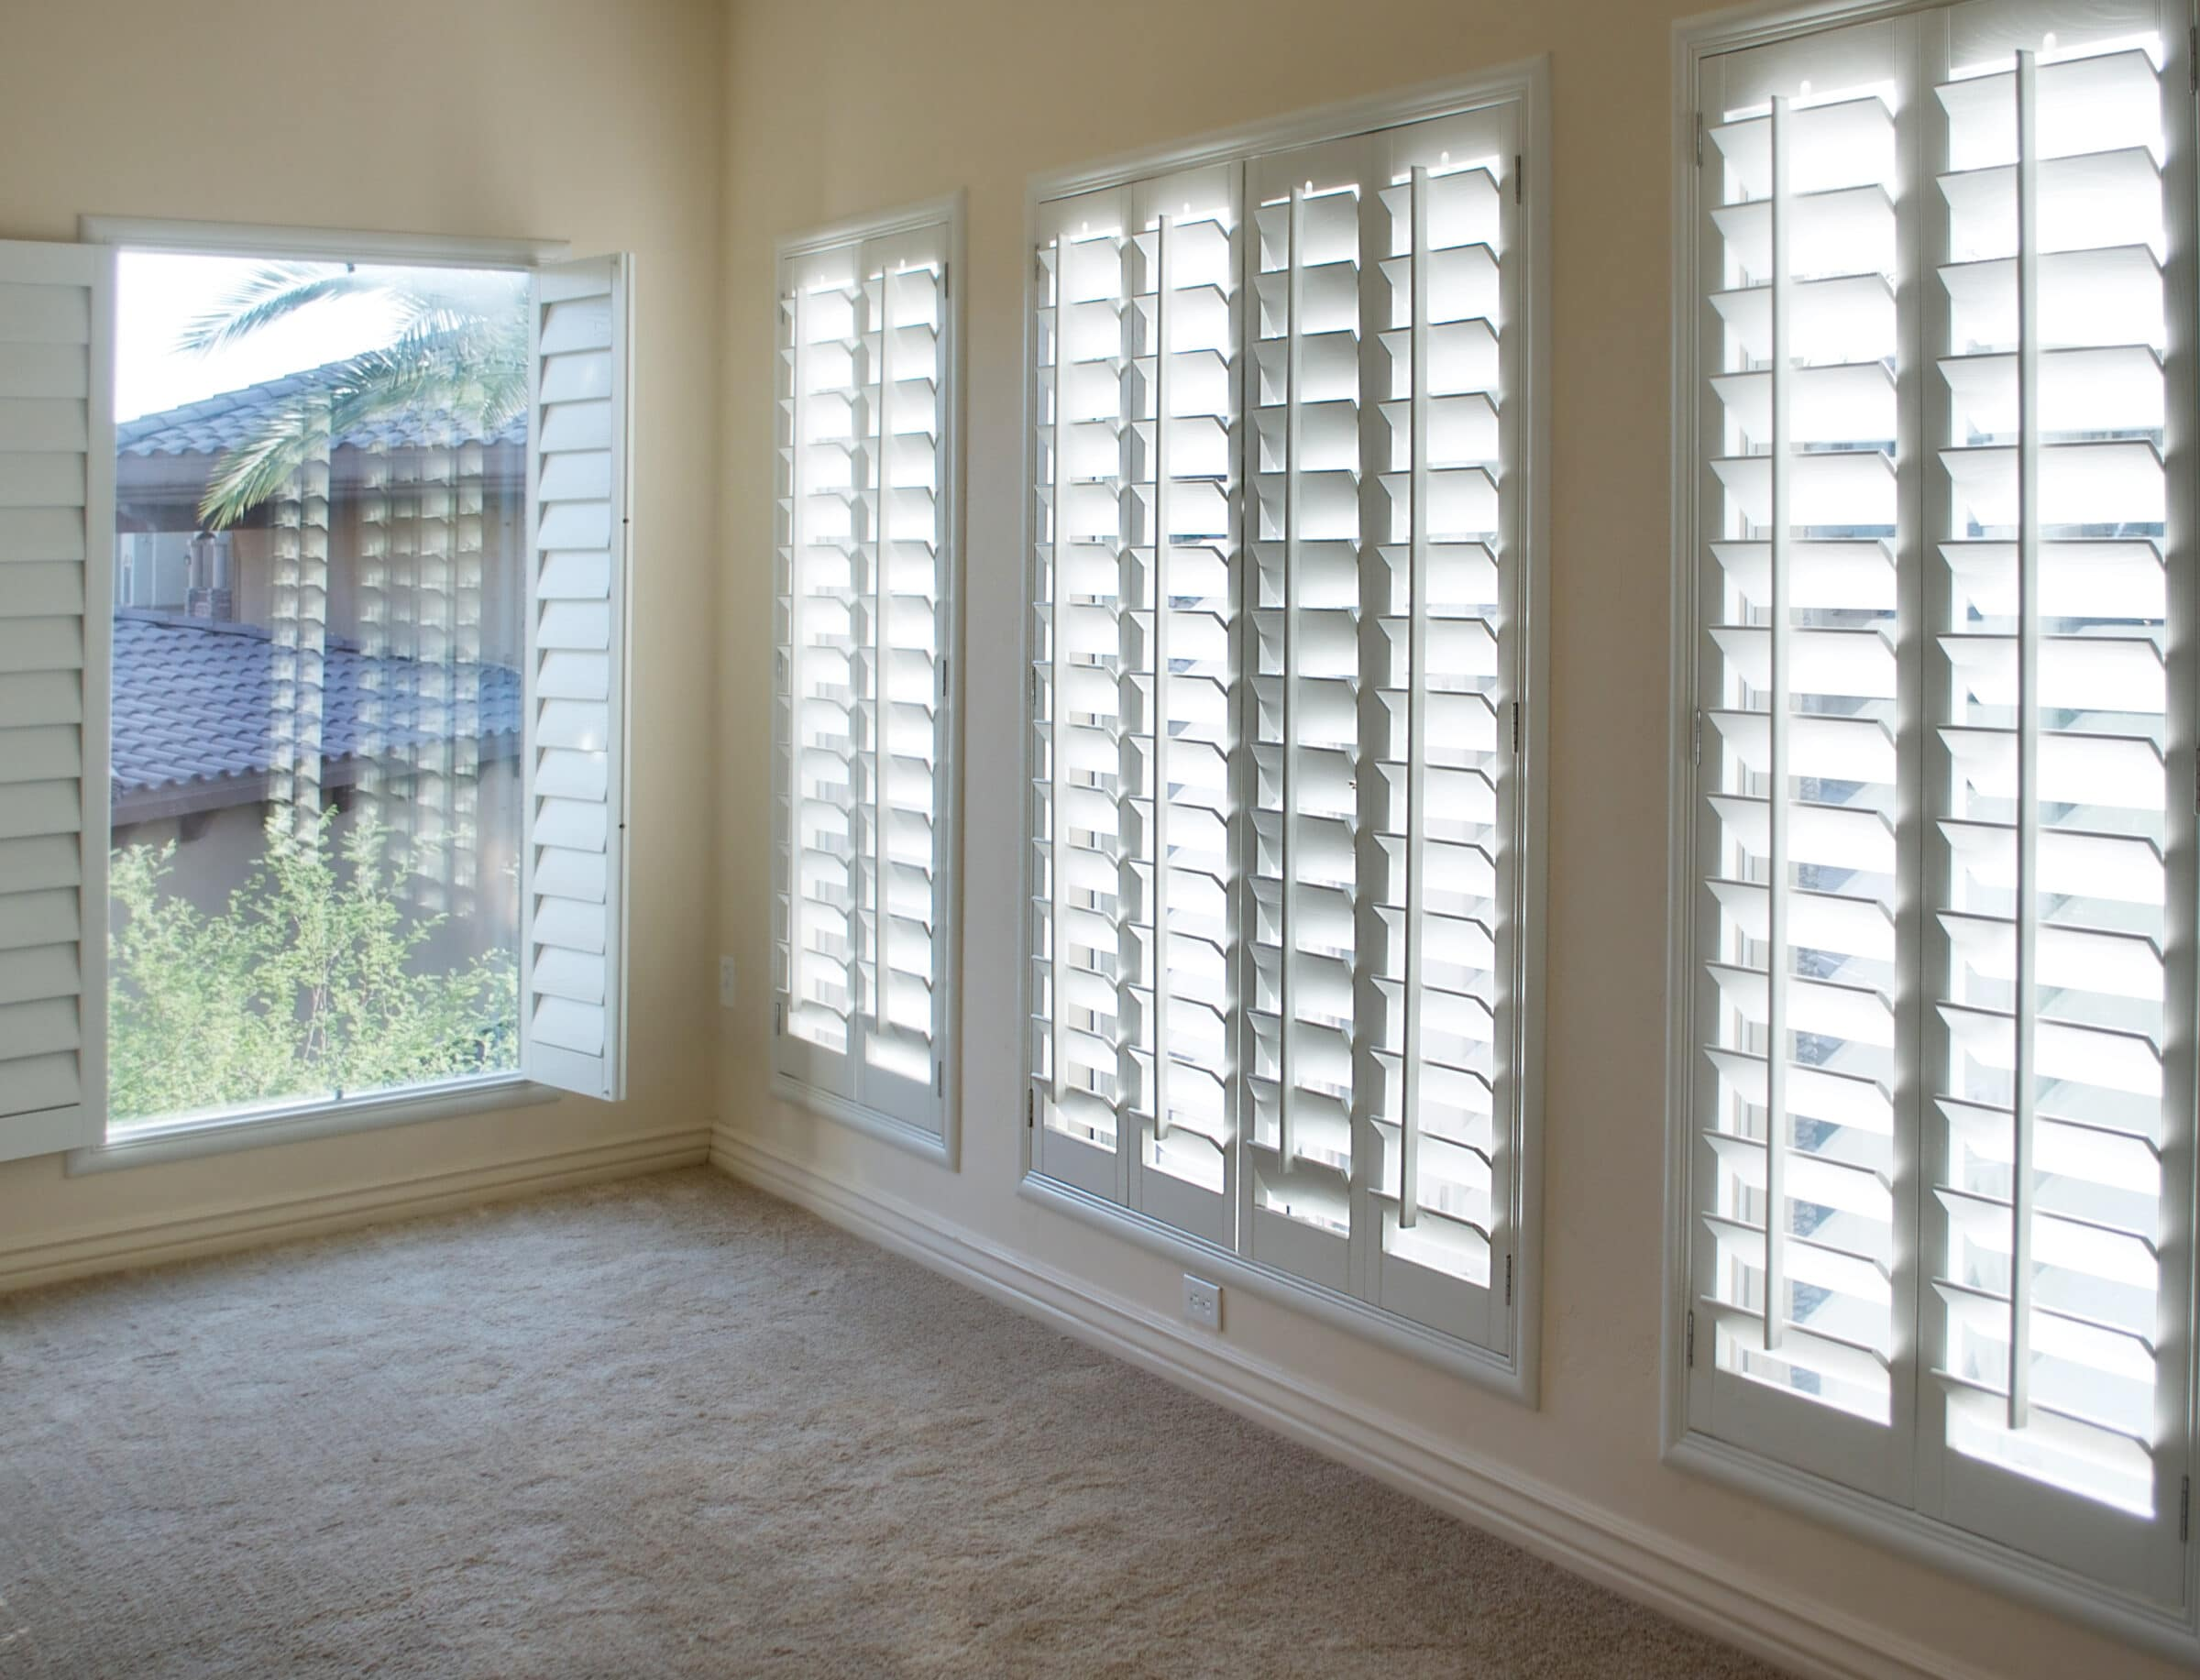 How Do Shutters Add Value to Your Home?